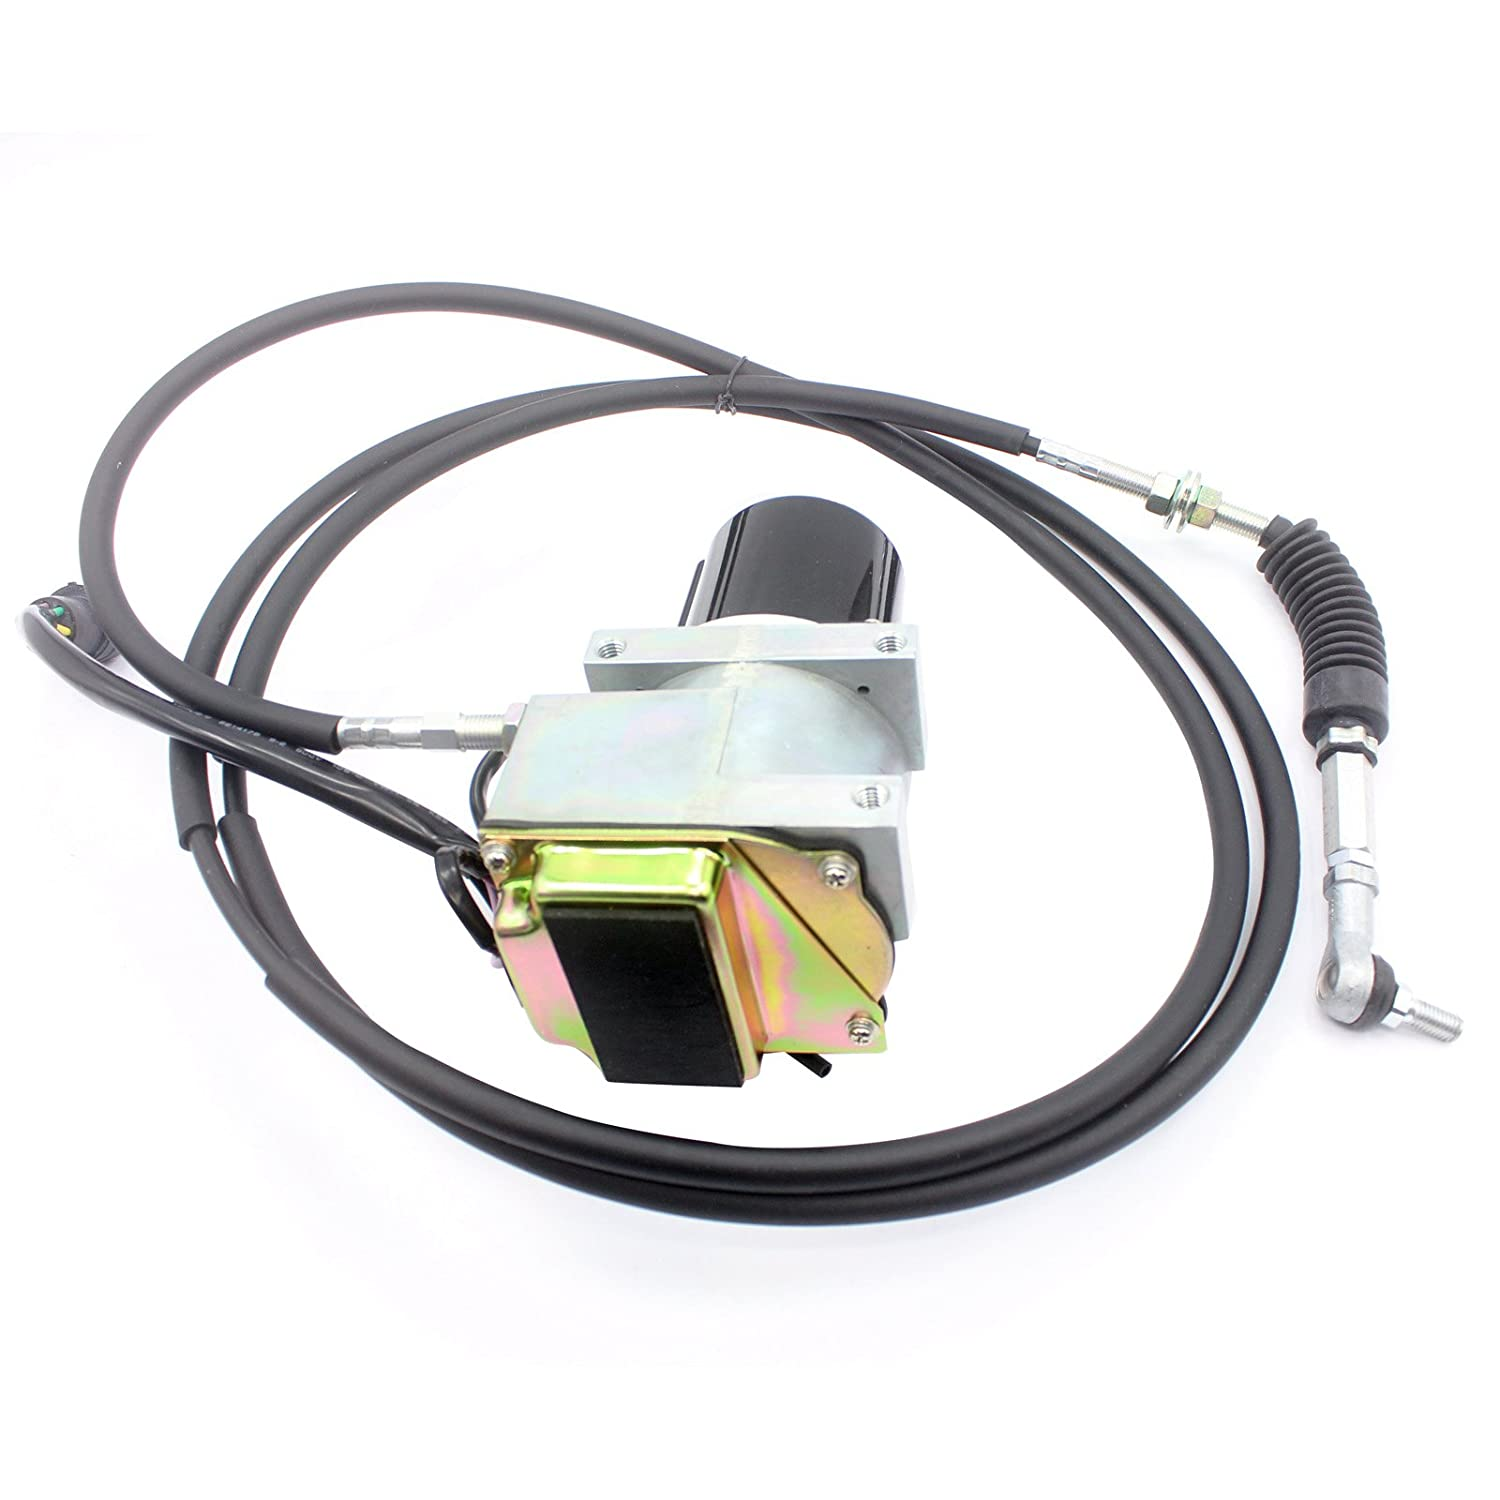 7Y-5571 7Y5571 Round Throttle Motor with Single Cable for E330L 330L Excavator Parts 6 Month Warranty